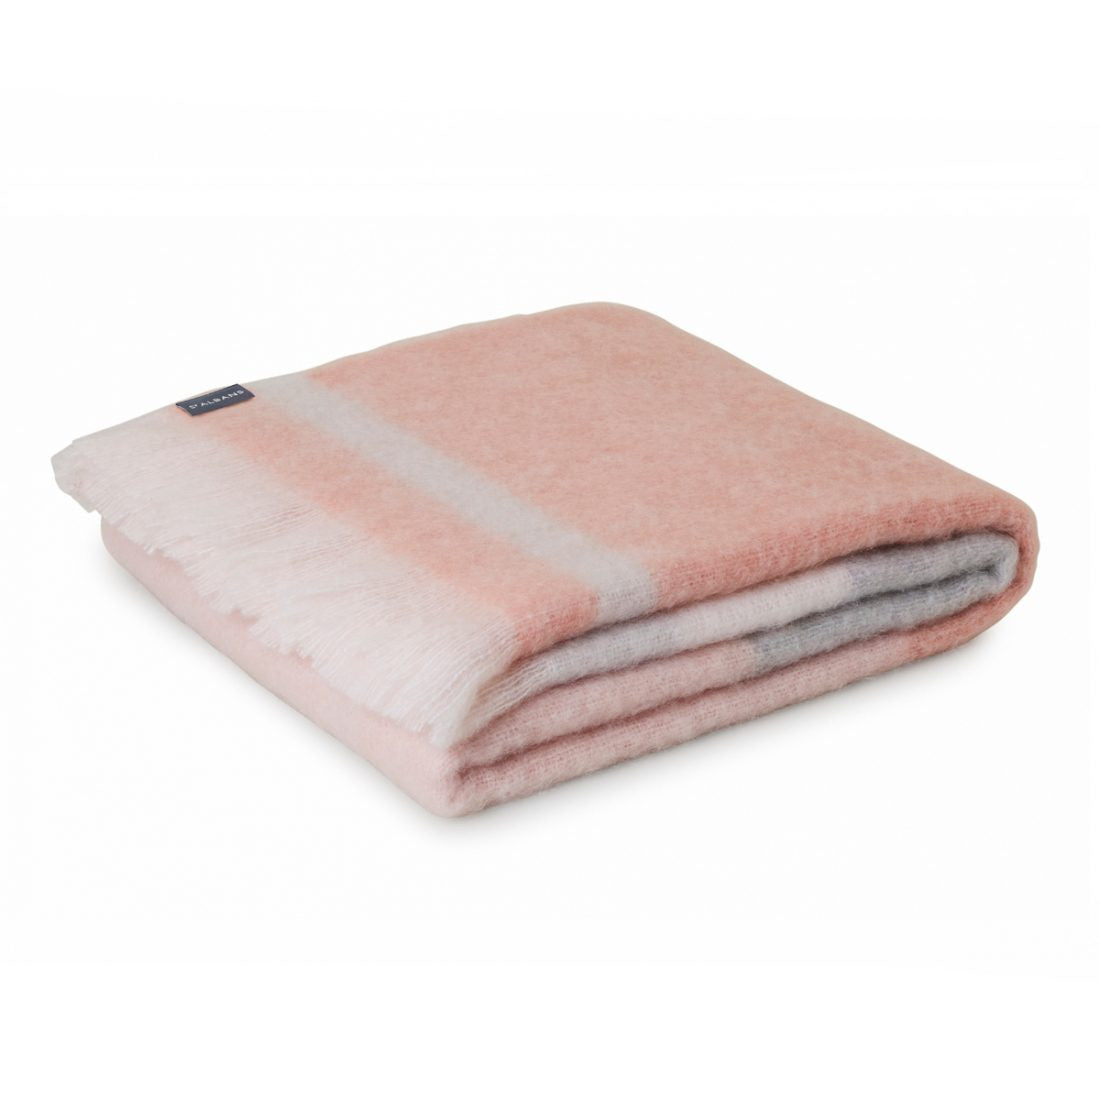 Mohair Throw Rug - Champagne by St Albans